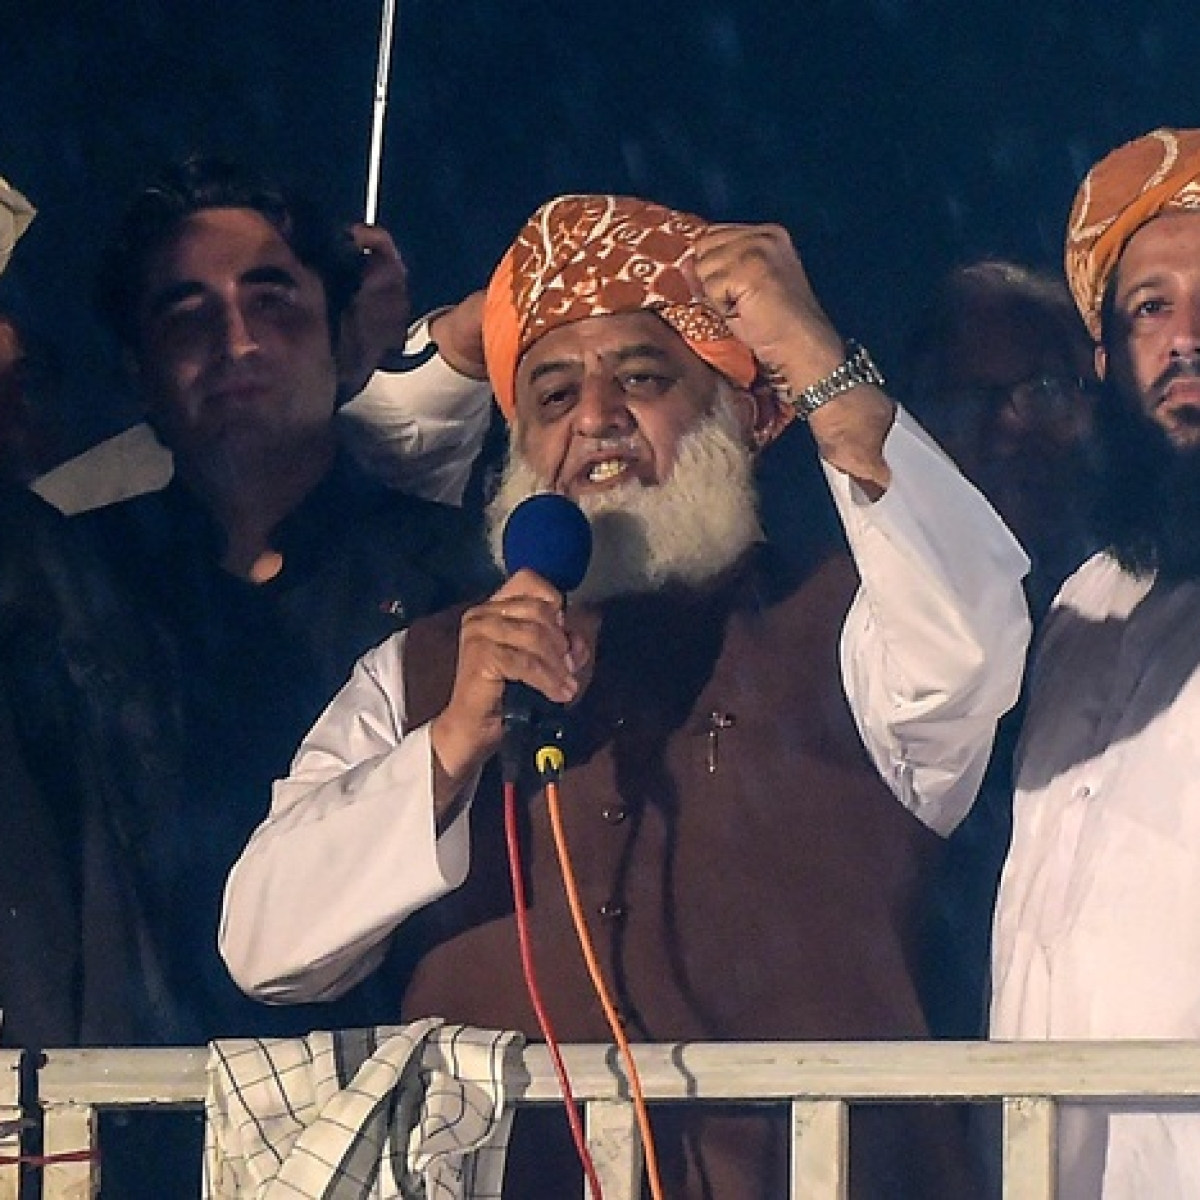 Pakistan cleric leading anti-government protest gives PM Imran Khan two-day ultimatum to step down